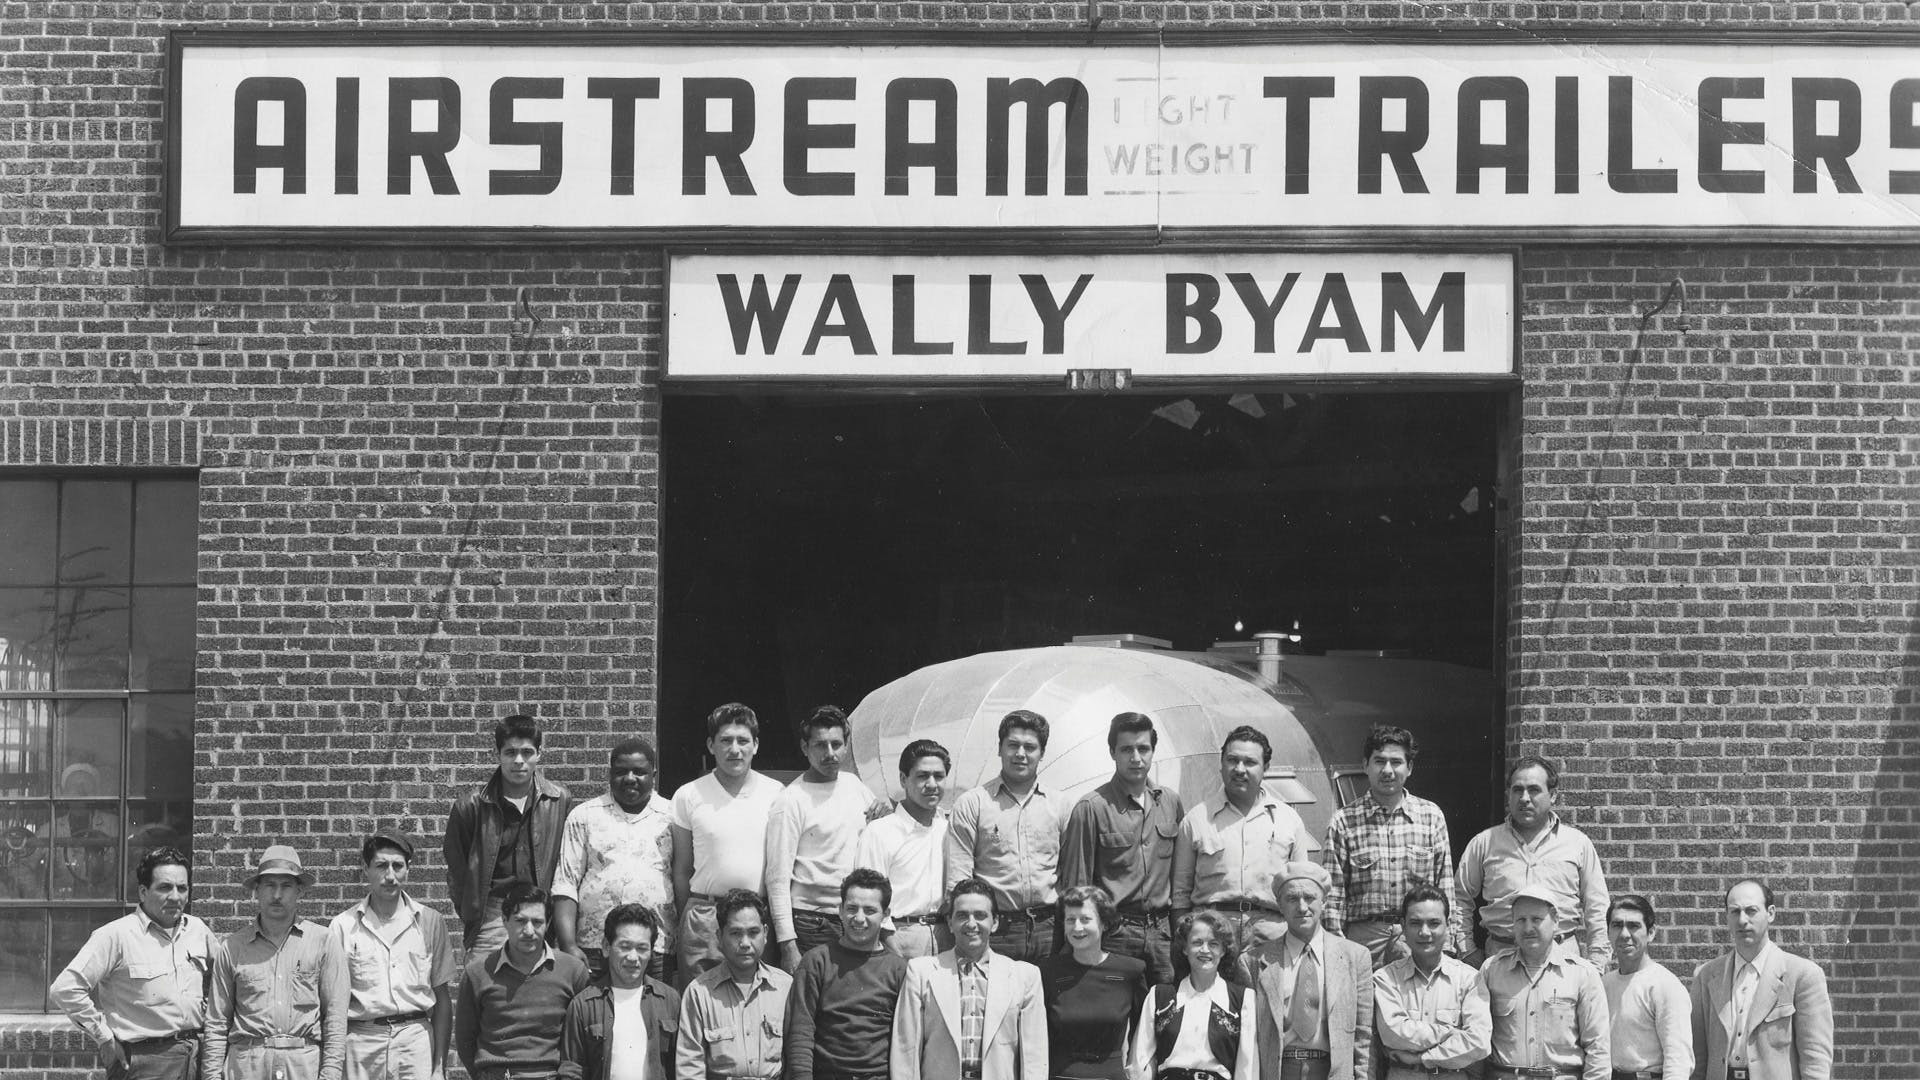 Wally-Byam-Airstream-history-1905s-california-factory